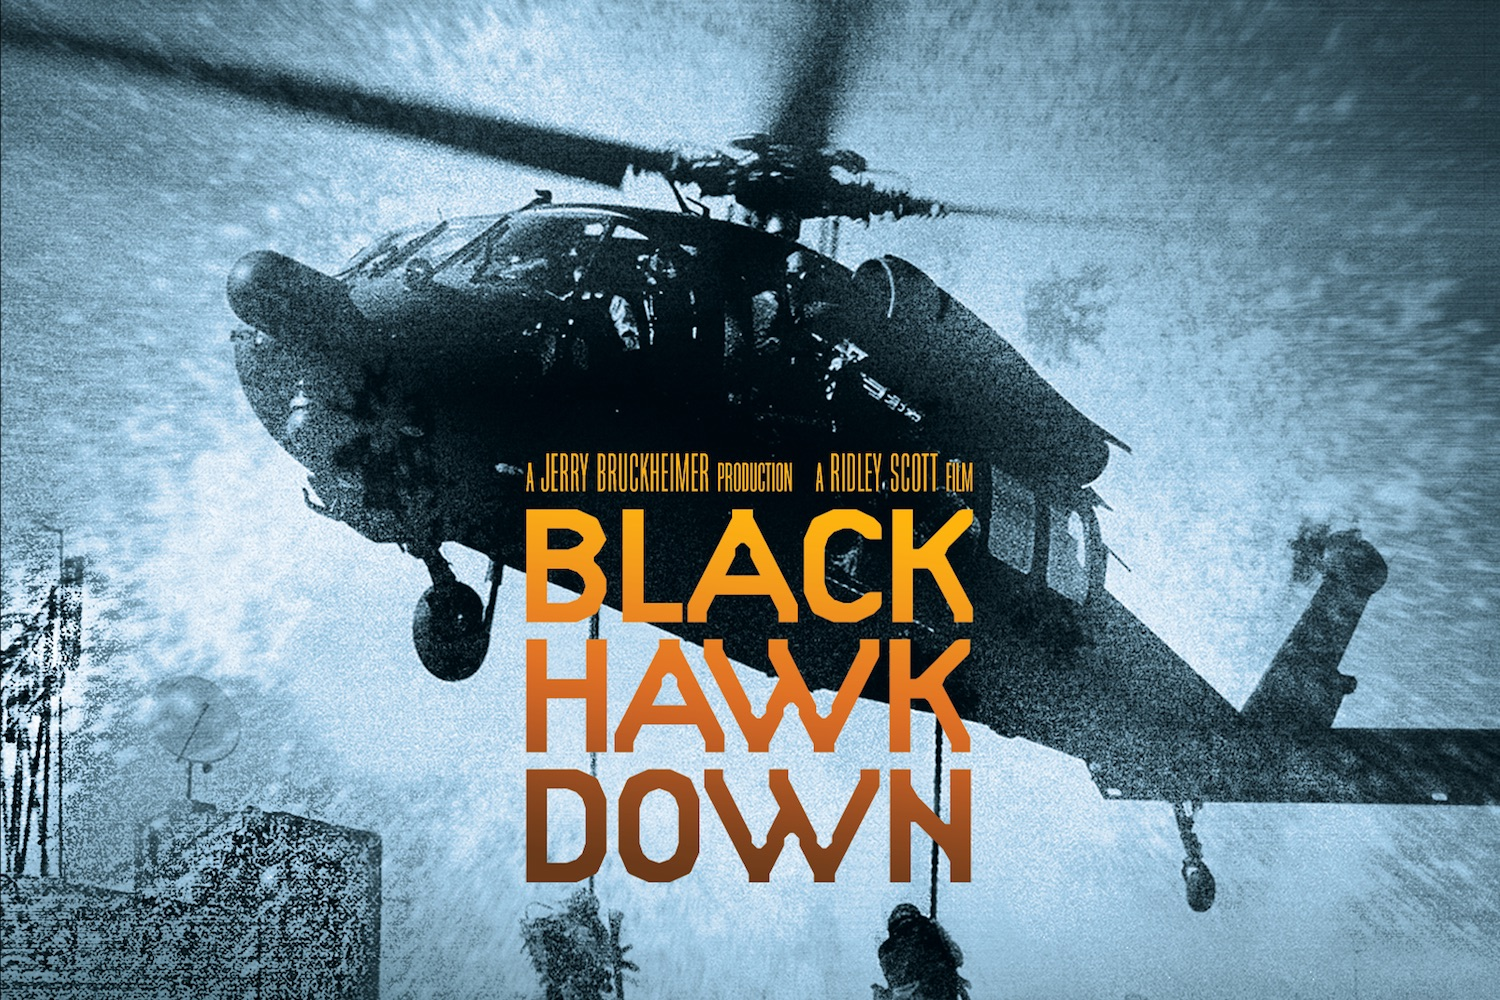 Black Hawk Down News On The 25th Anniversary Of The